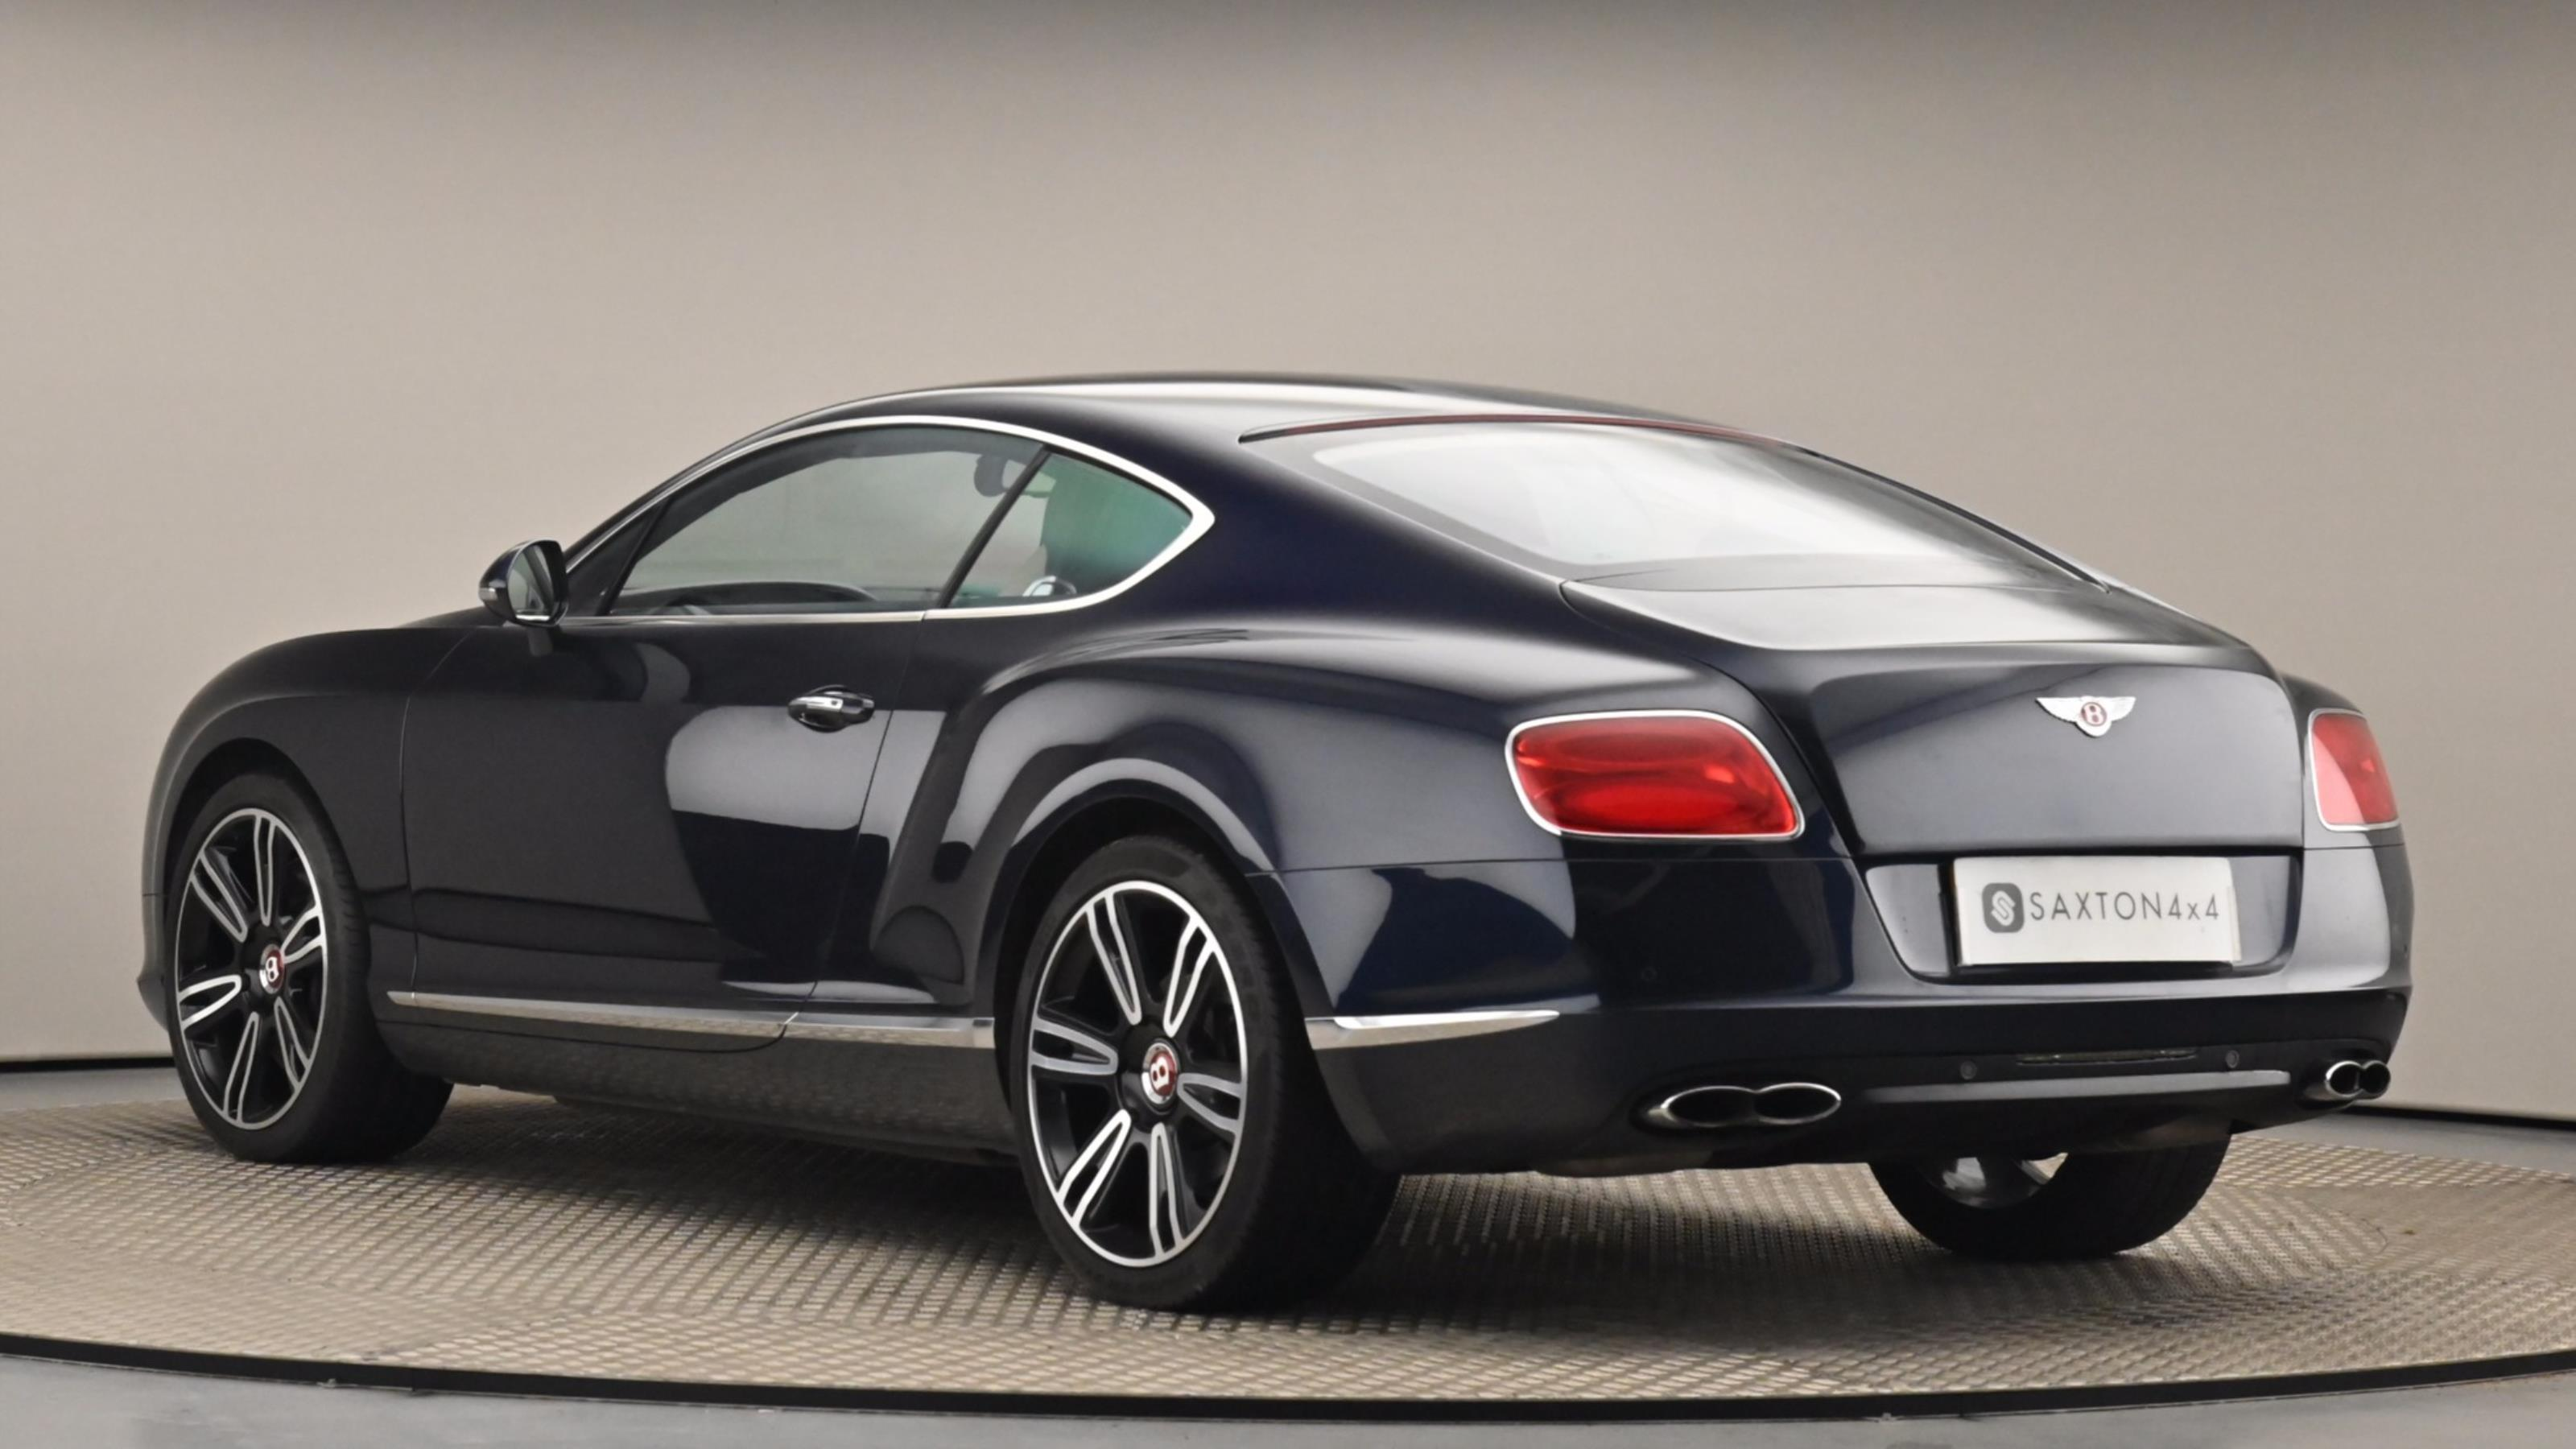 Used 2013 Bentley CONTINENTAL GT 4.0 V8 2dr Auto BLUE at Saxton4x4